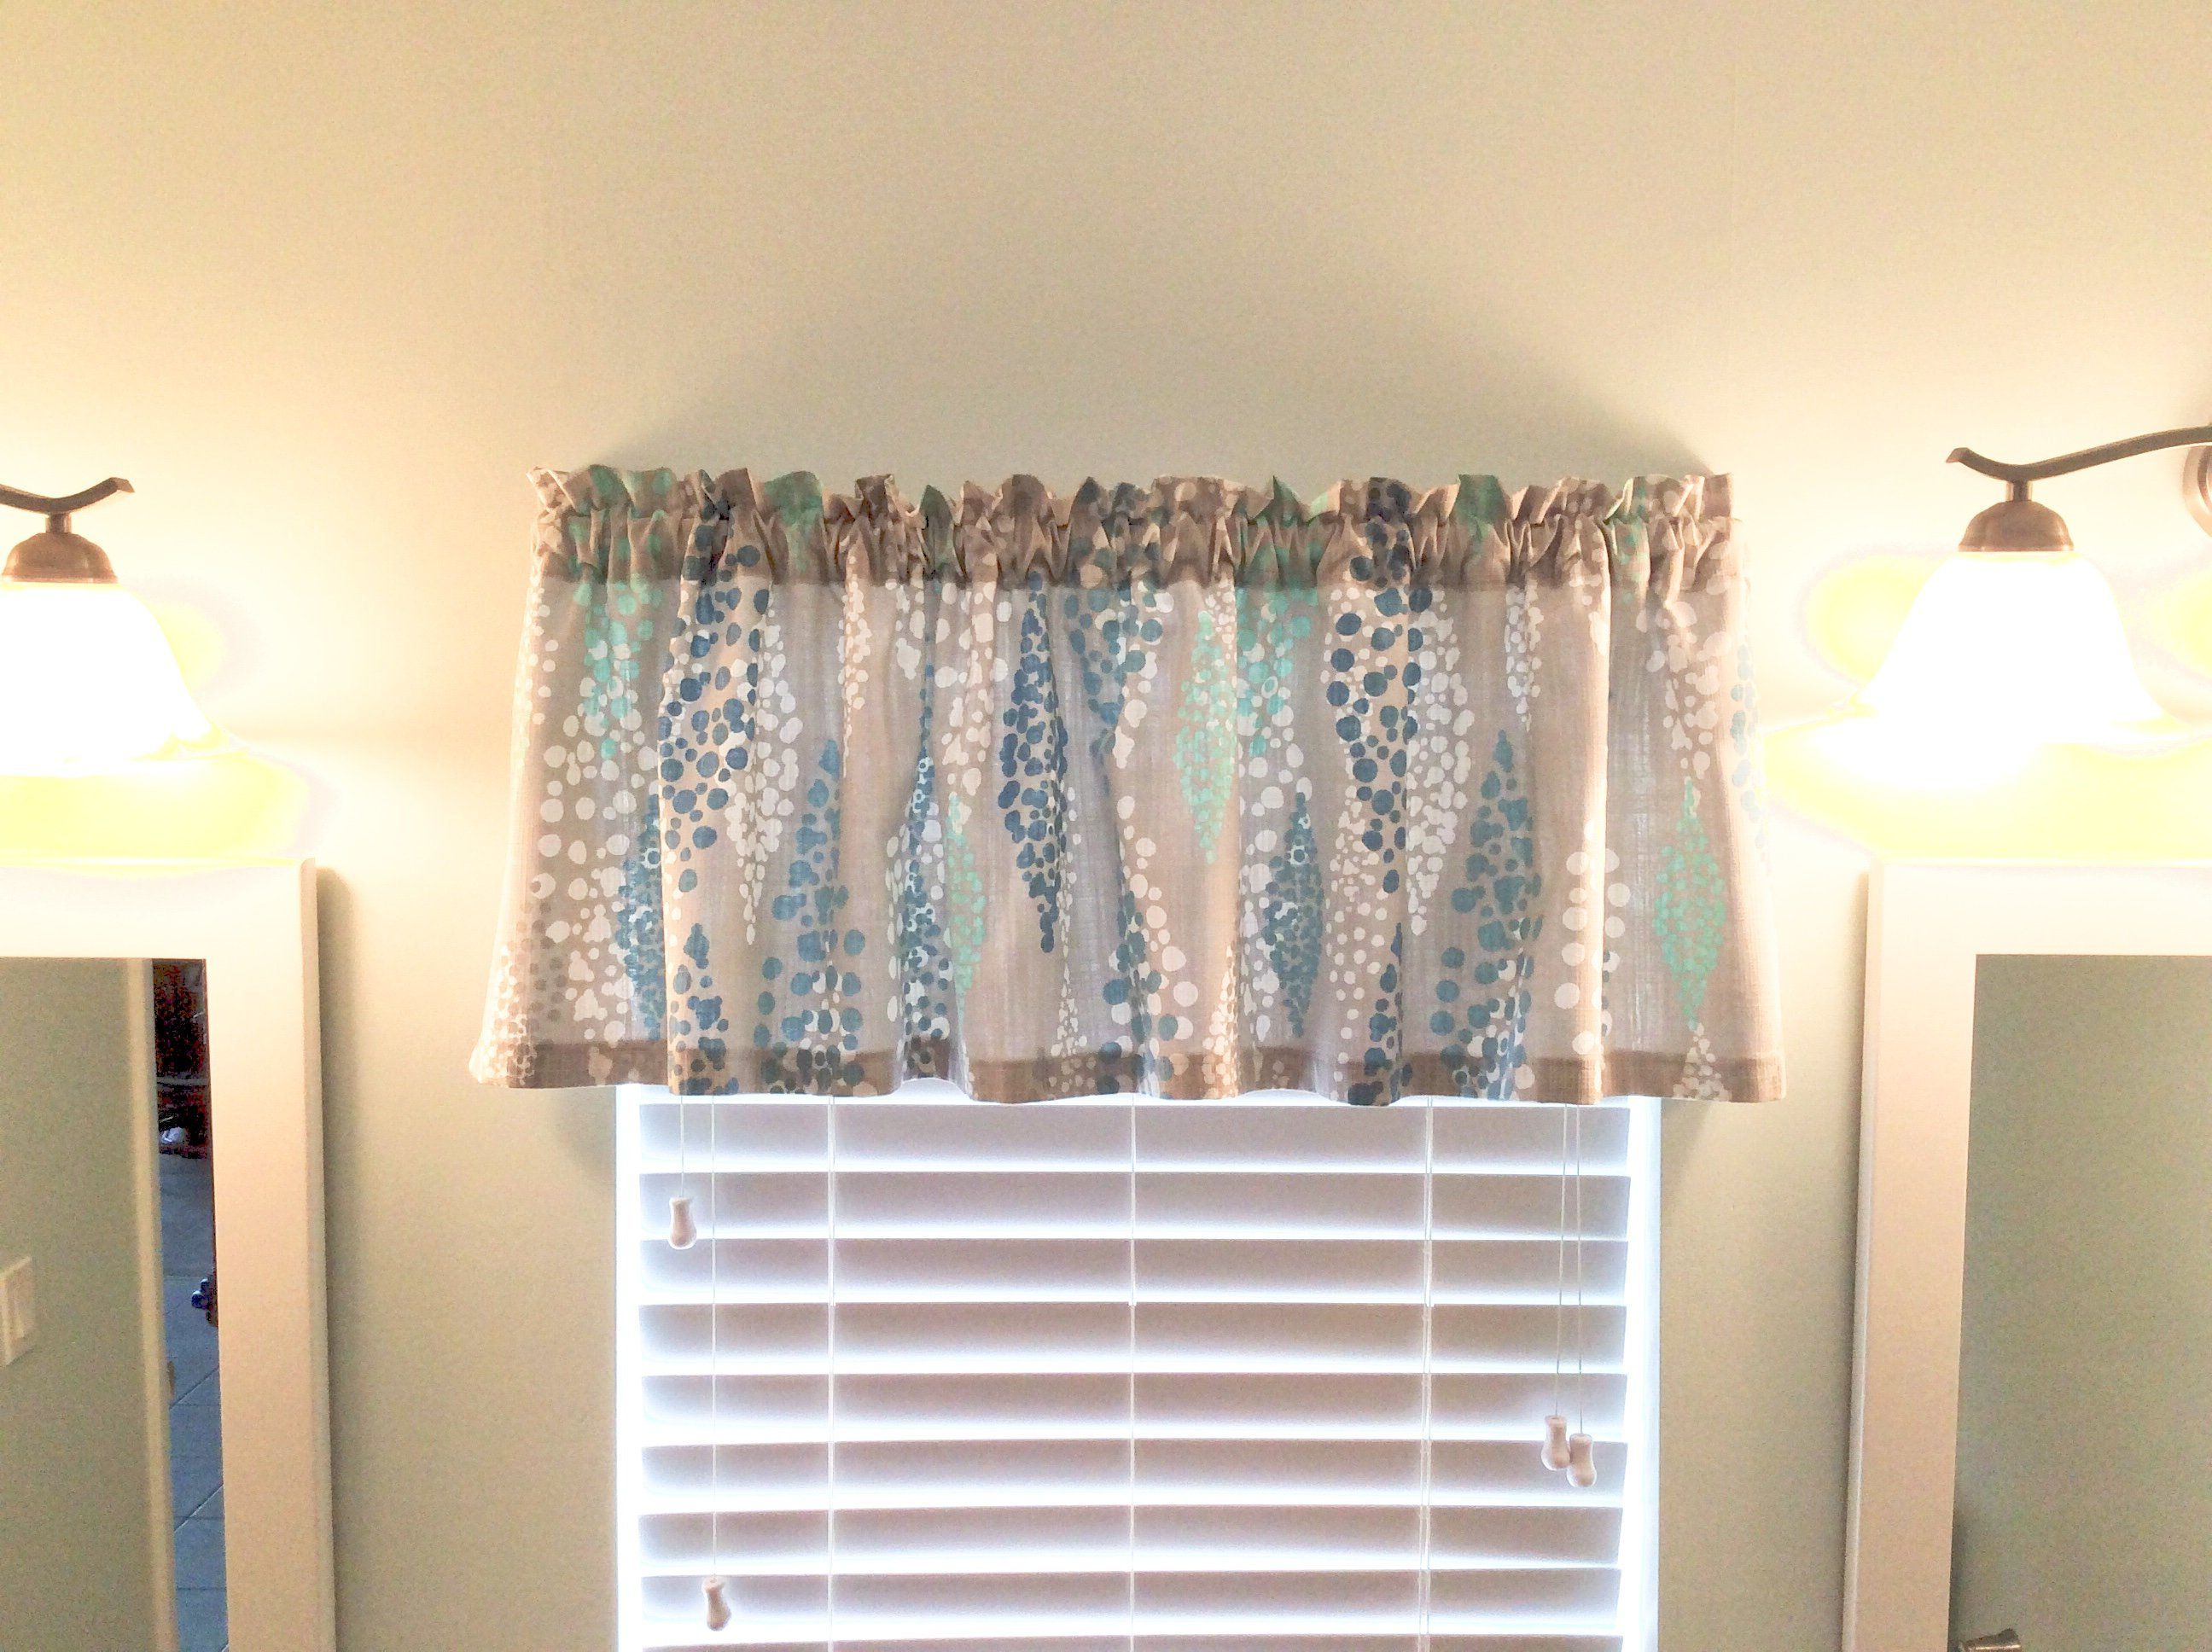 Beach Valance Coastal Tropical Lake Curtains Nautical Boat Curtains Kitchen Bathroom Bedr Grey Fabric Kitchen Window Valances Tropical Bathroom